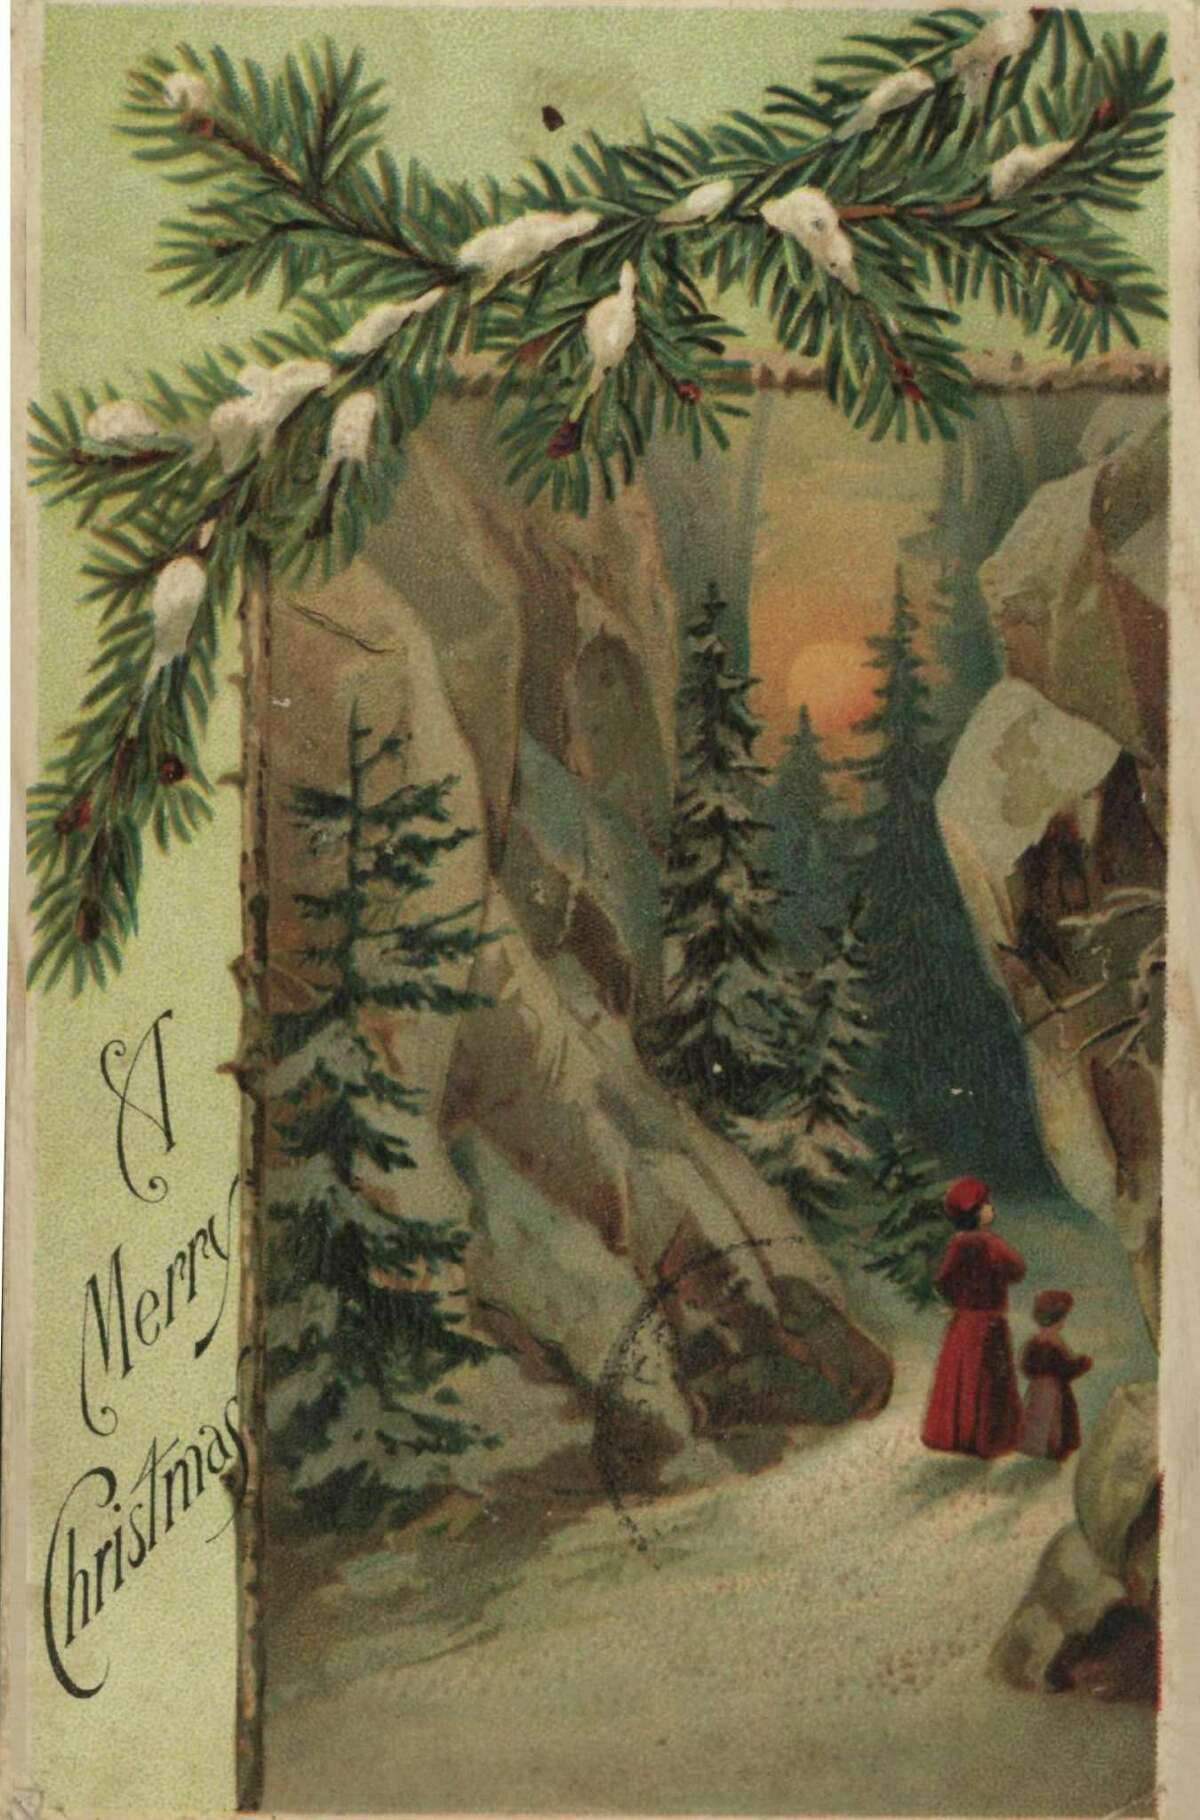 A Christmas postcard from 1907 is part of the Brazoria County Historical MuseumÂ?'s collection. The postcard and other items are part of a Christmas exhibit about the holidayÂ?'s history and traditions. The exhibit runs through December, and will be open for guests attending SantaÂ?'s Workshop, Dec. 17.